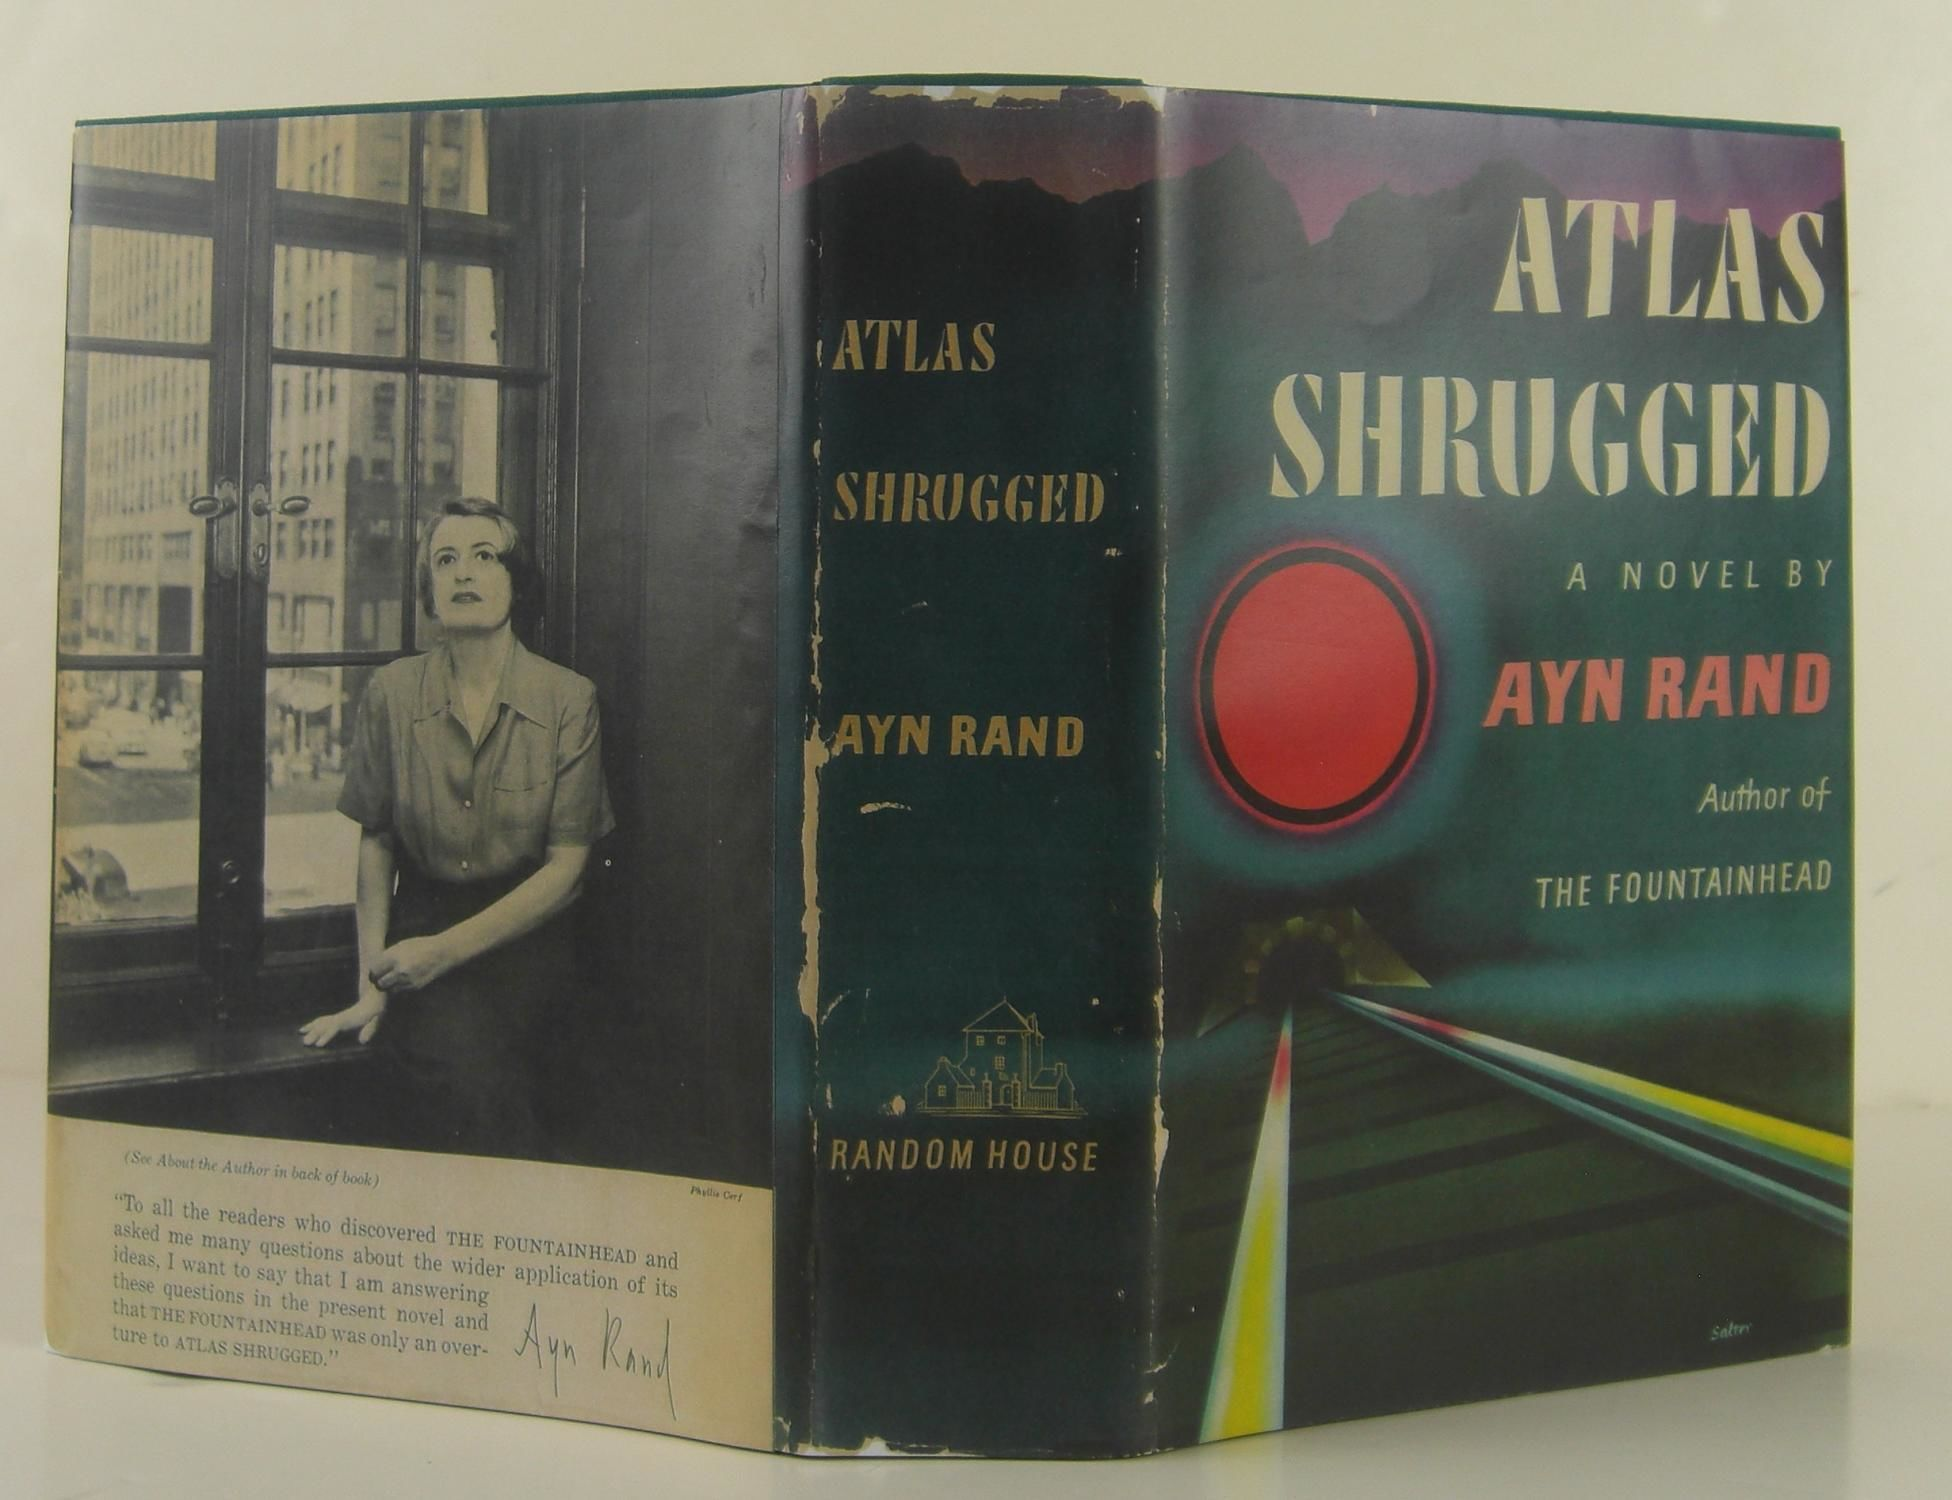 Atlas Shrugged by Ayn Rand - Hardcover - Second Printing